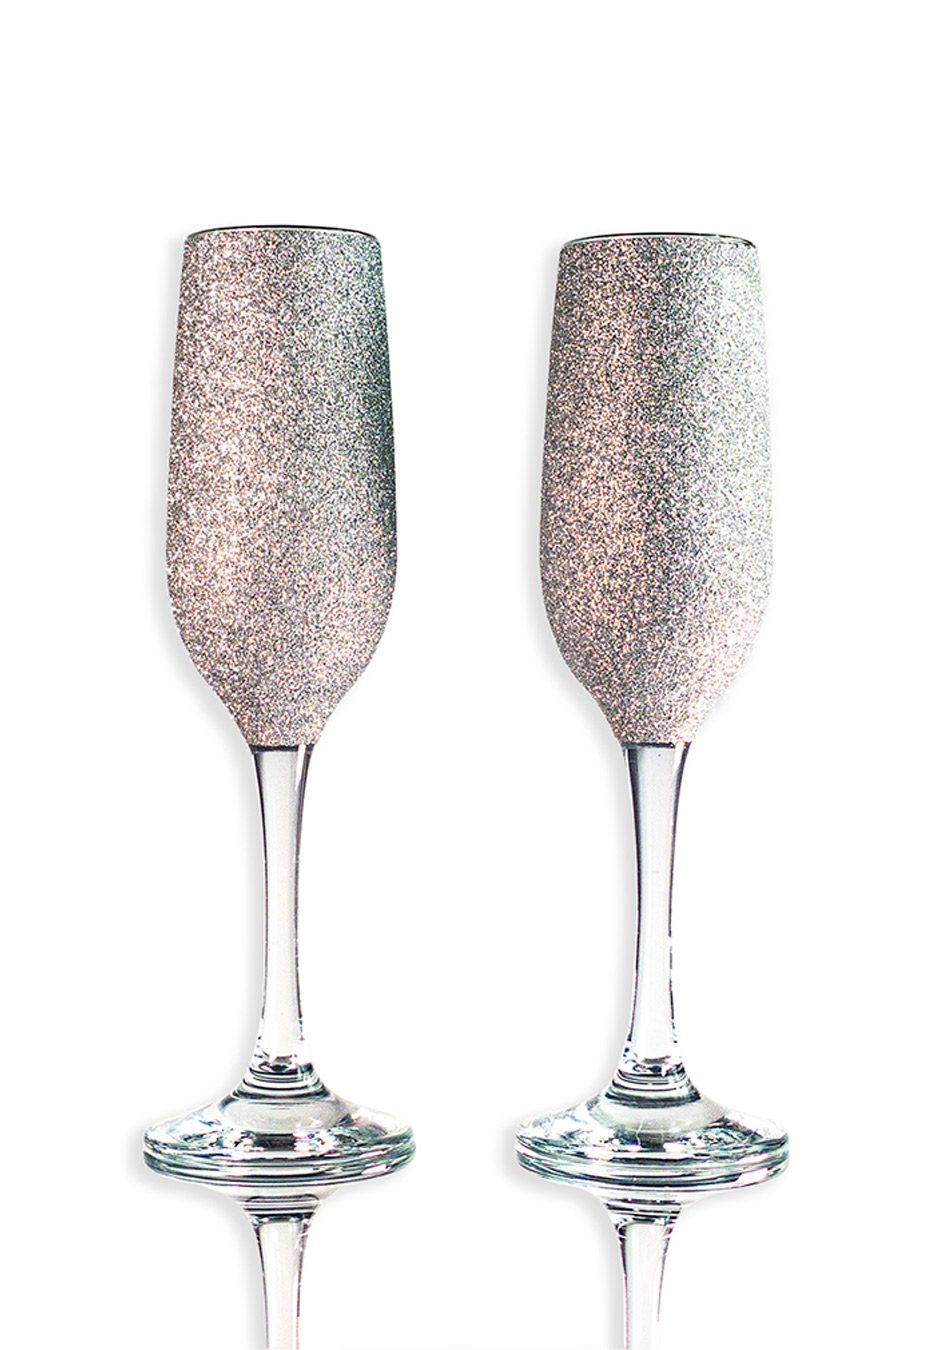 Silver Champagne flutes | Sparkleware gift set